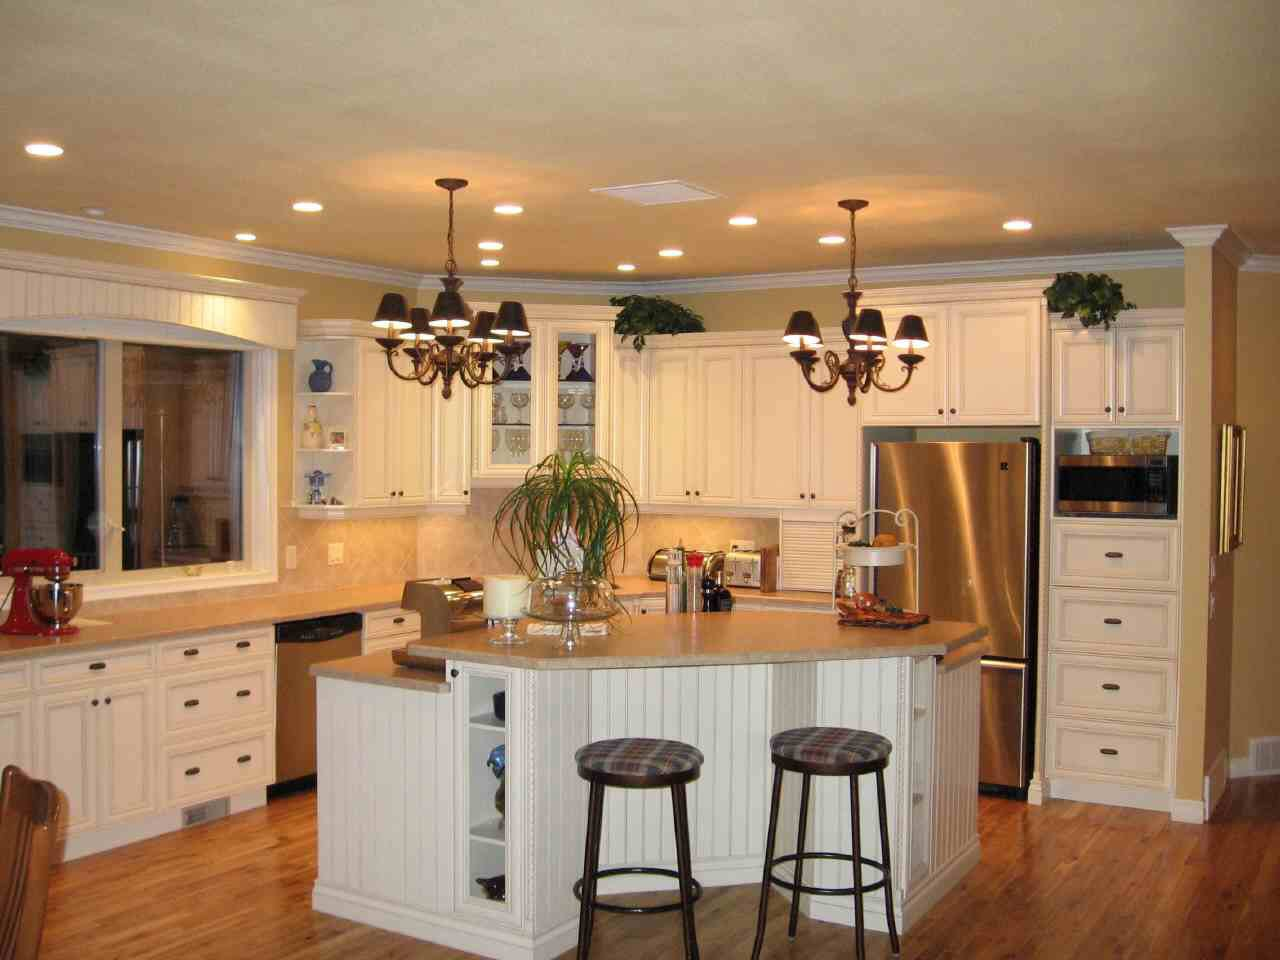 Incredible White Small Kitchen Design Ideas 1280 x 960 · 109 kB · jpeg